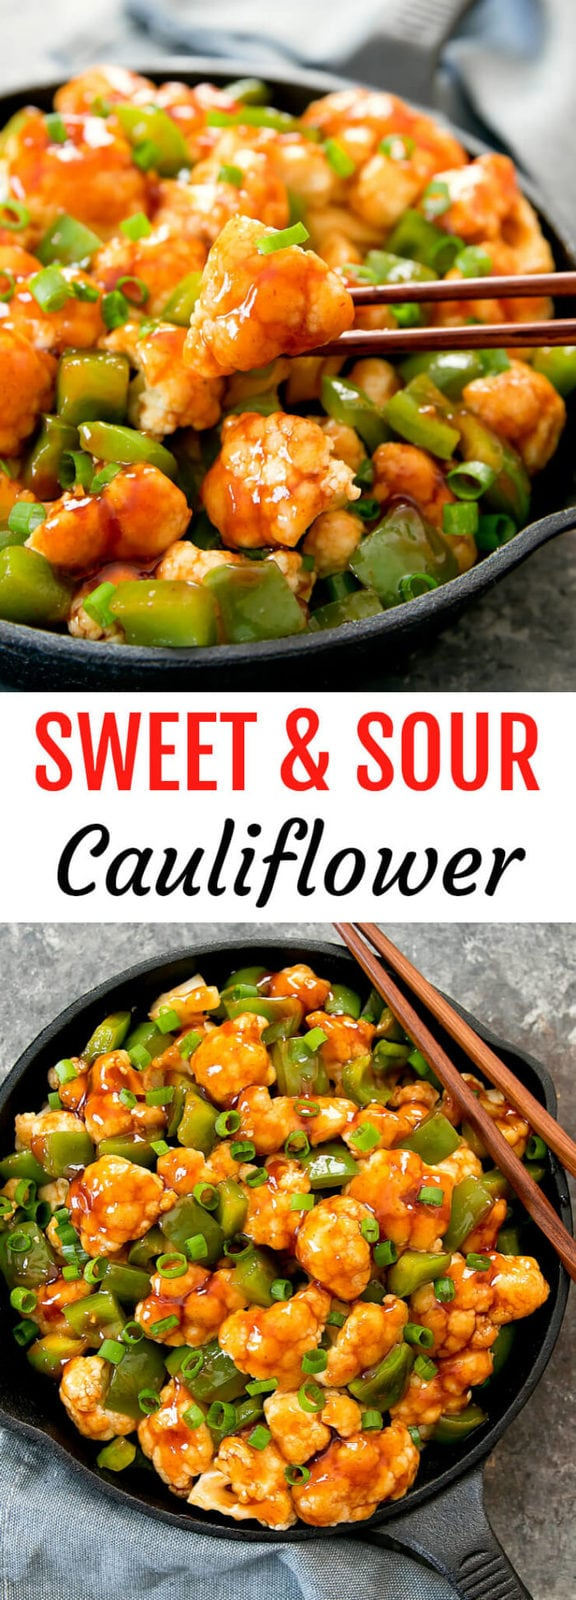 sweet and sour cauliflower pinterest collage